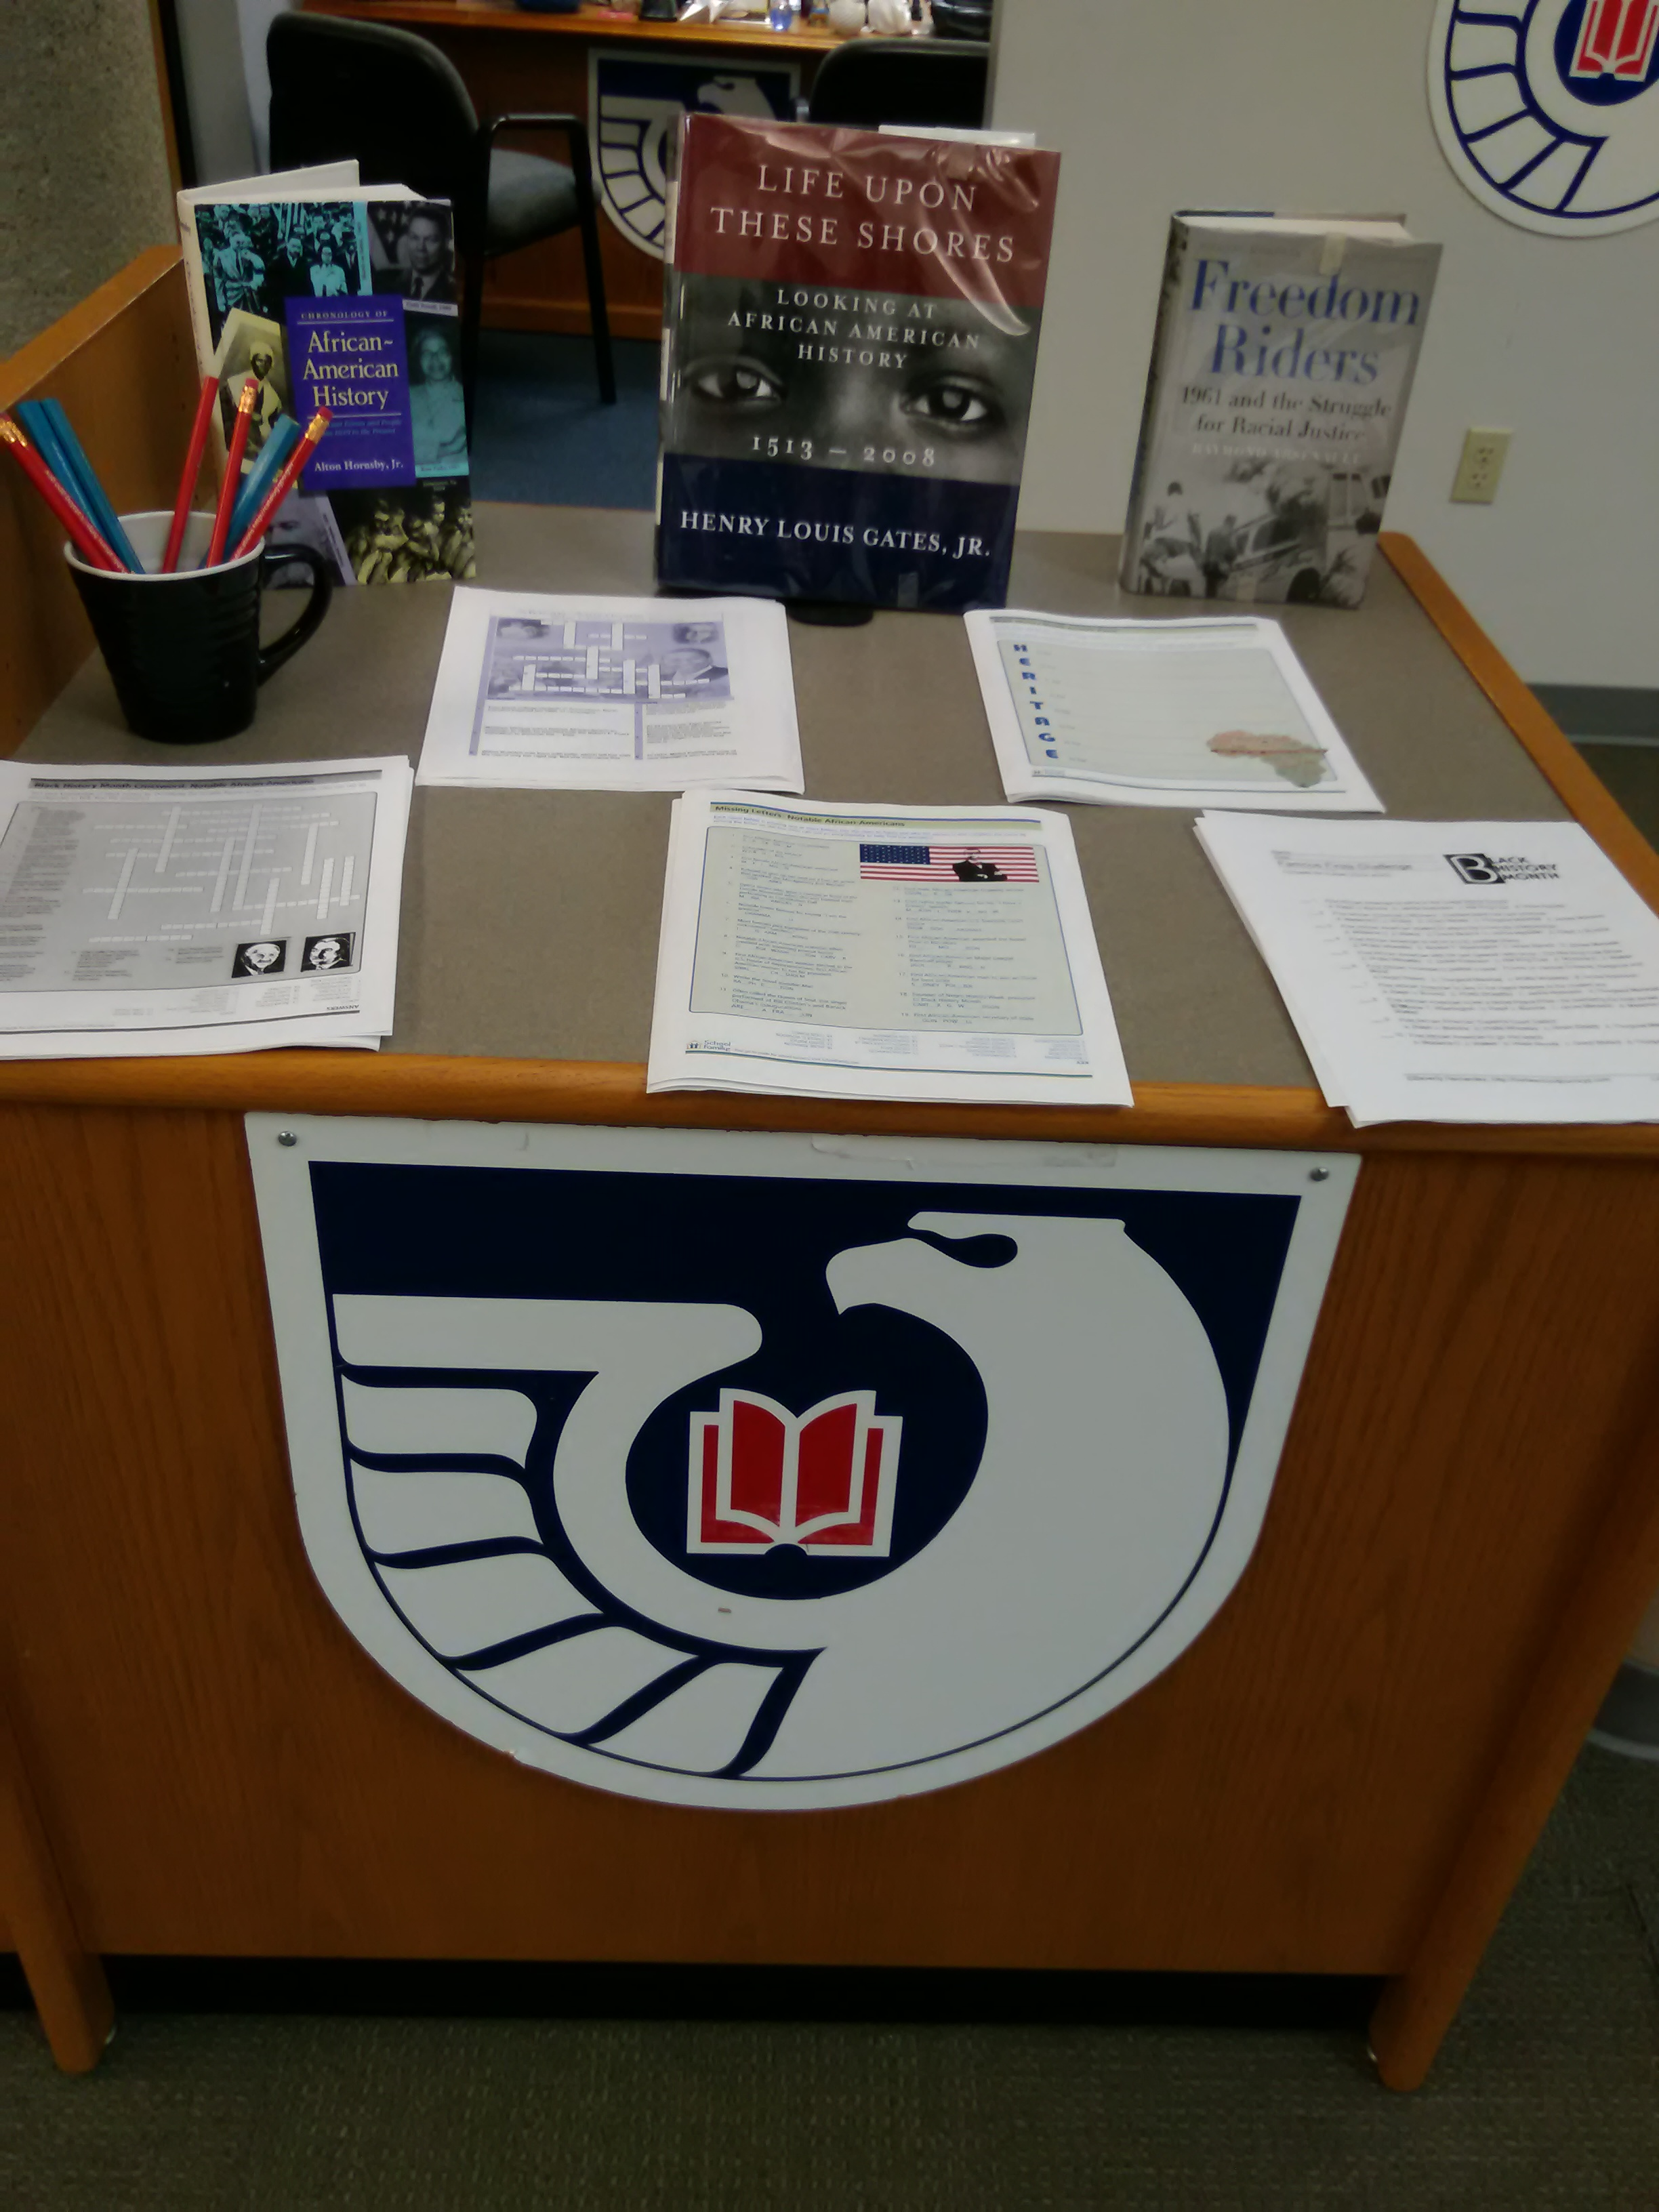 Black History Month display in Government Documents with books